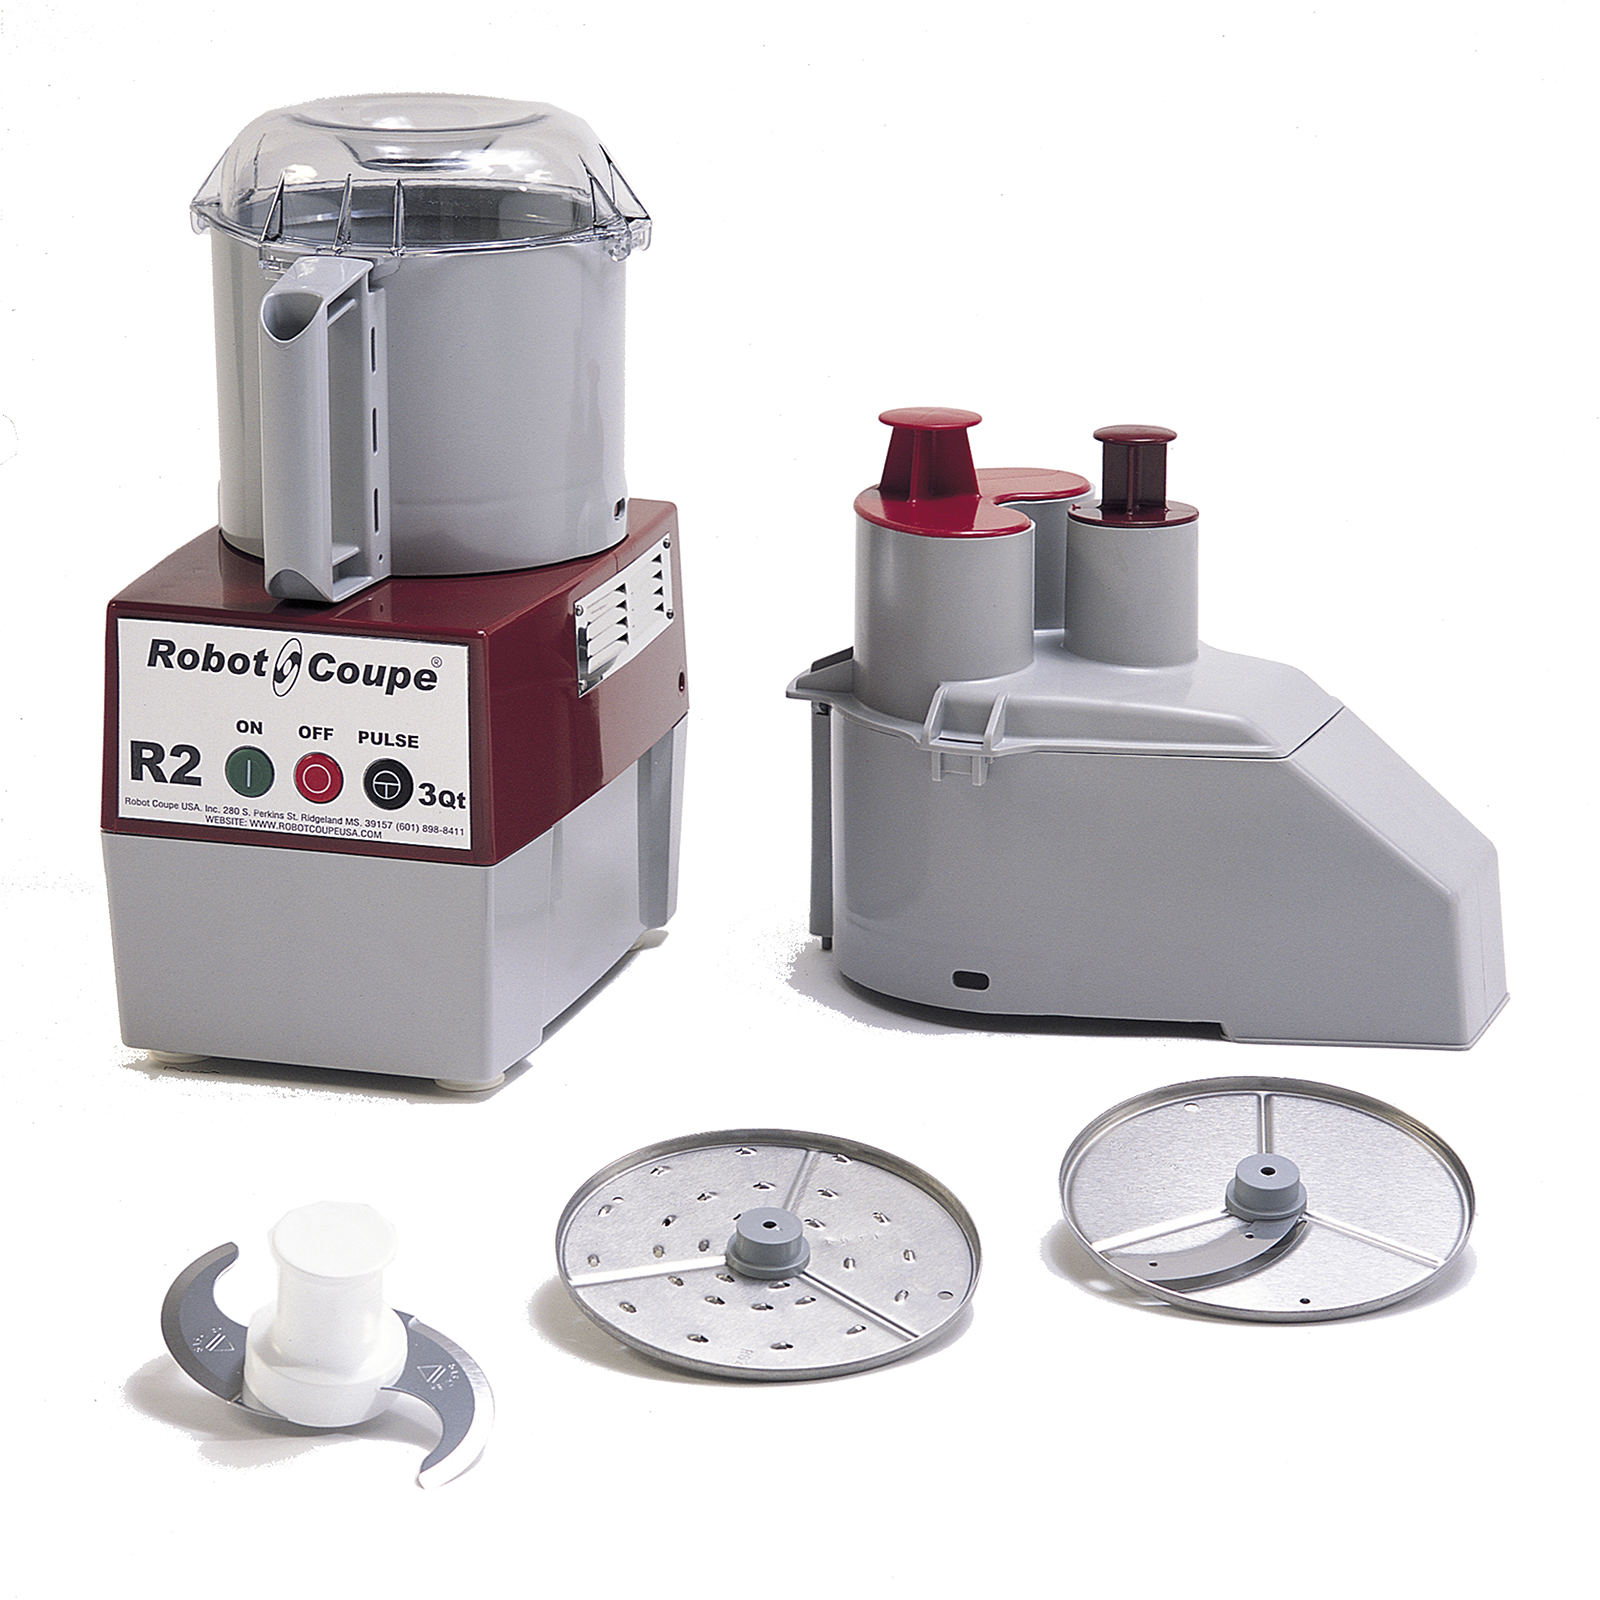 R2N Robot Coupe food processor, benchtop / countertop